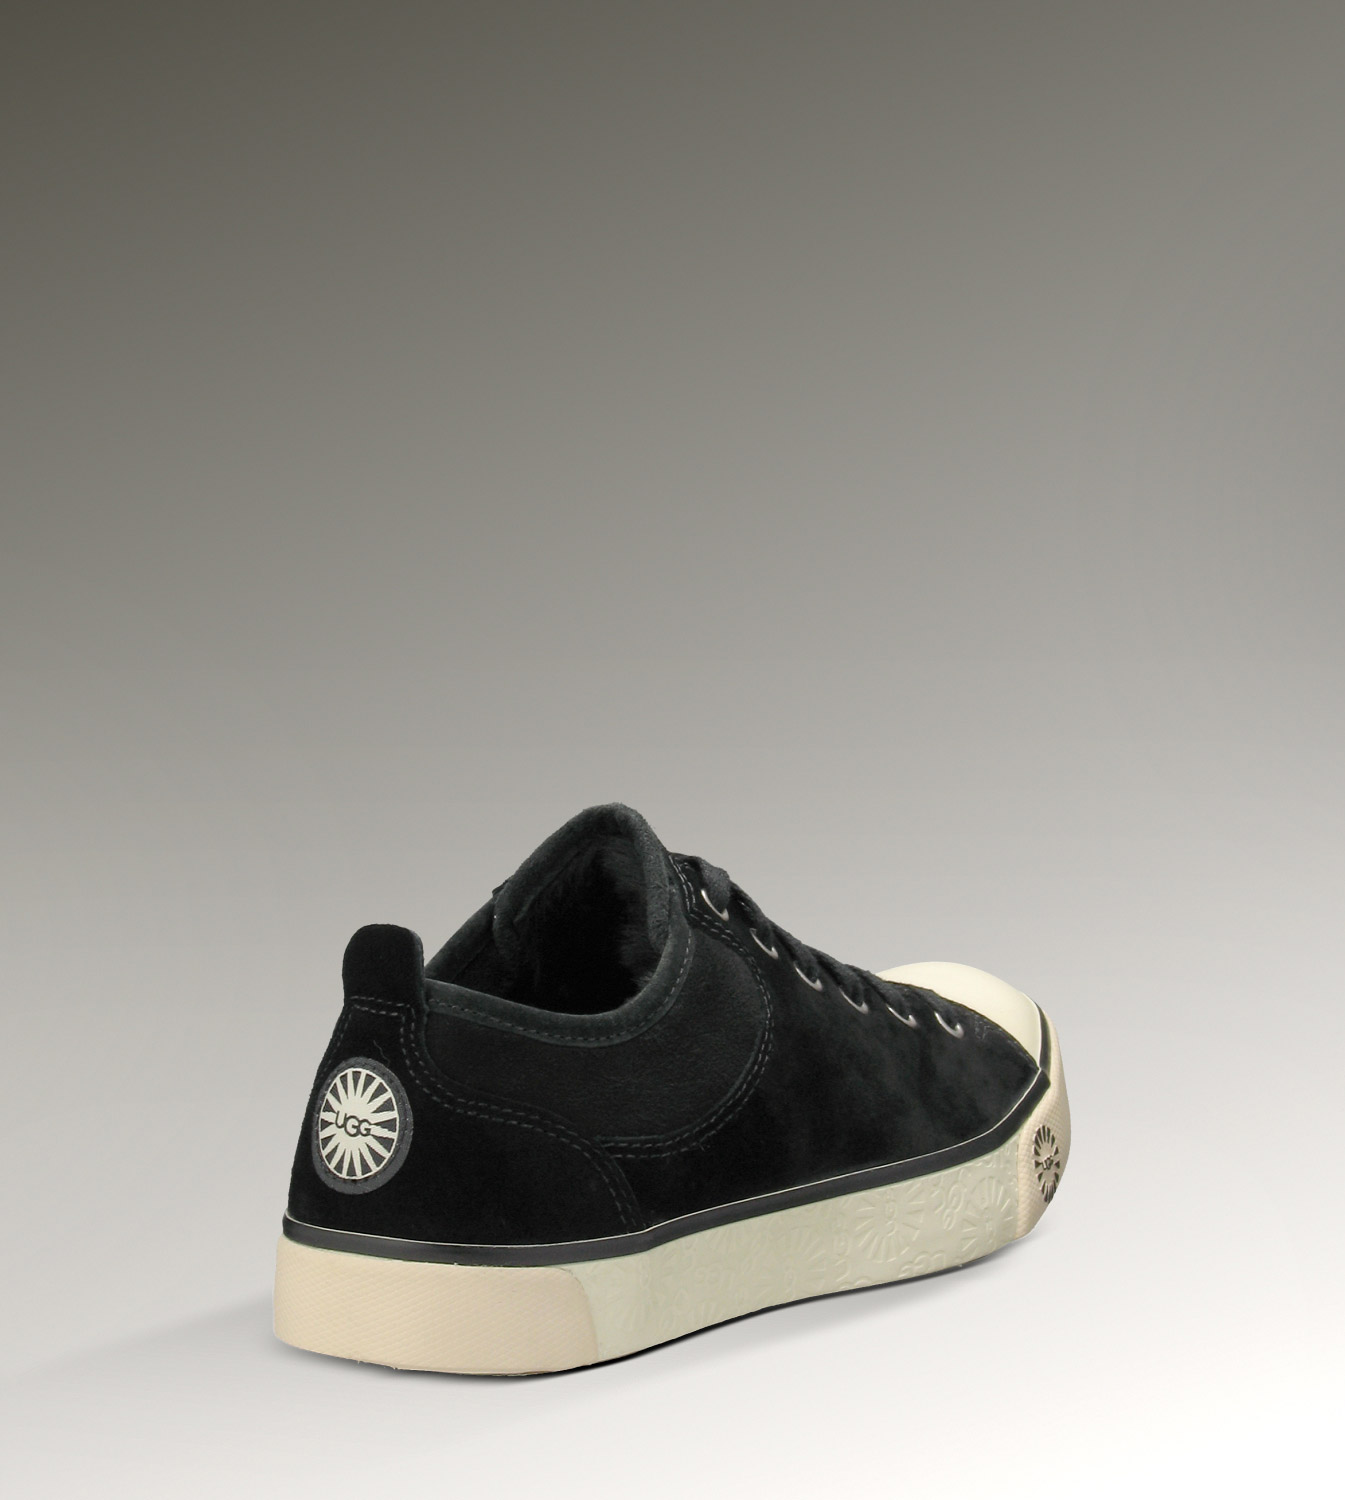 UGG Evera 1888 Black Sneakers